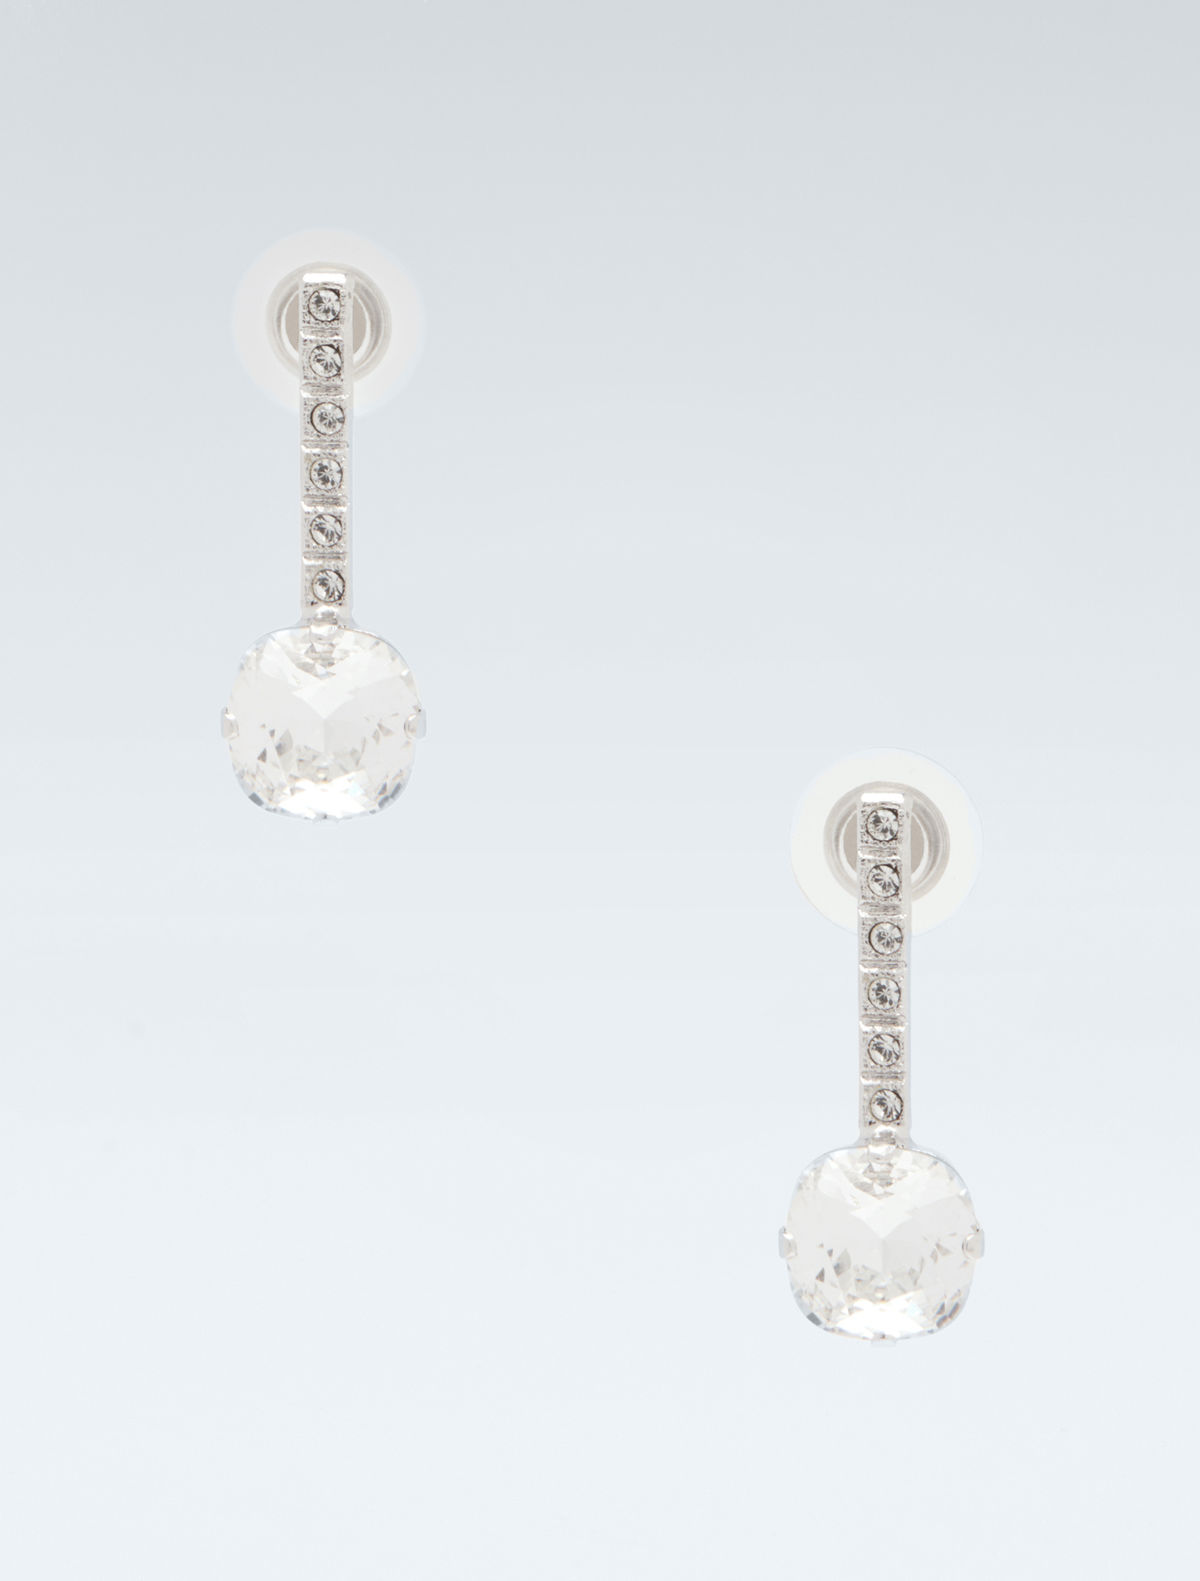 Crystal and rhinestone earrings